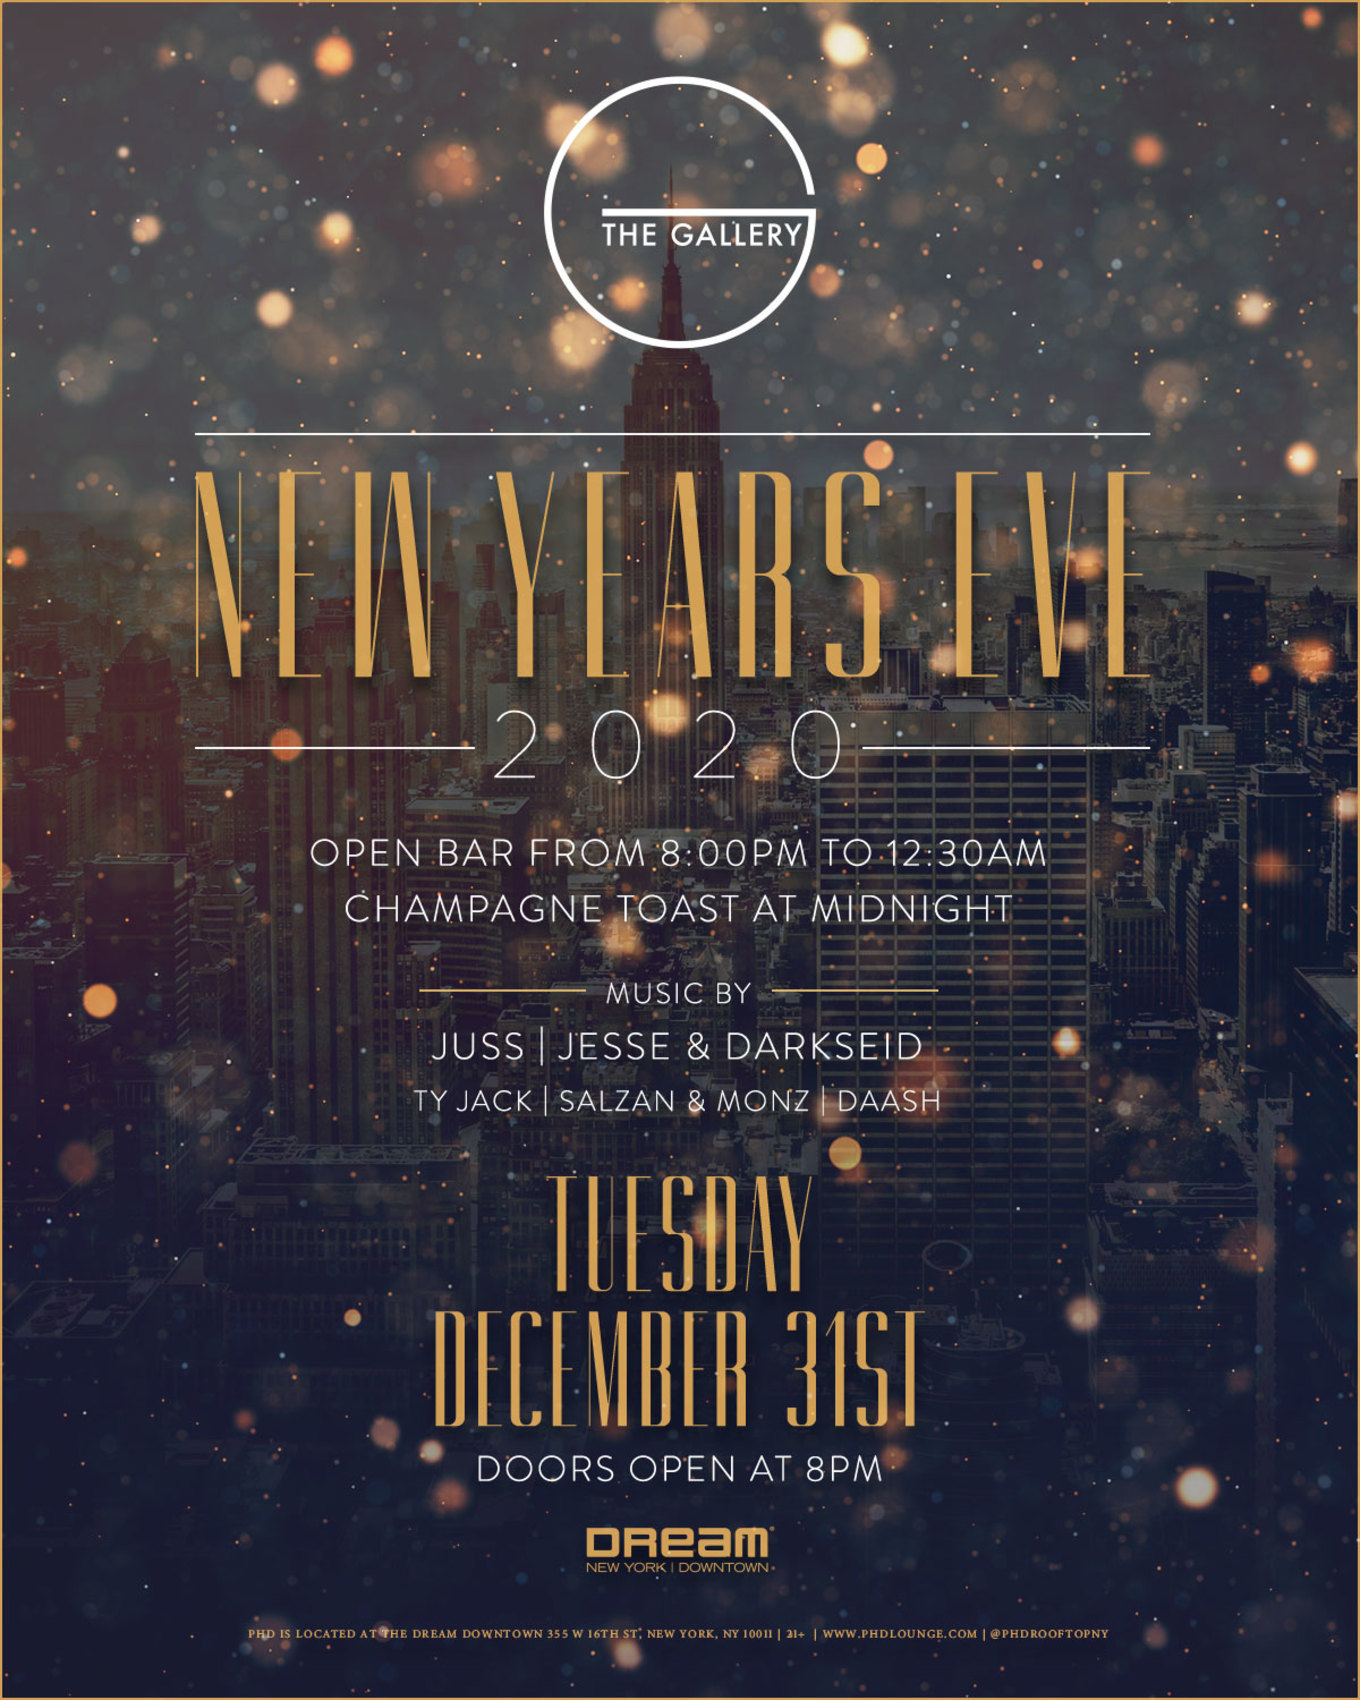 DREAM DOWNTOWN NEW YEAR'S EVE 2020 at THE GALLERY ...